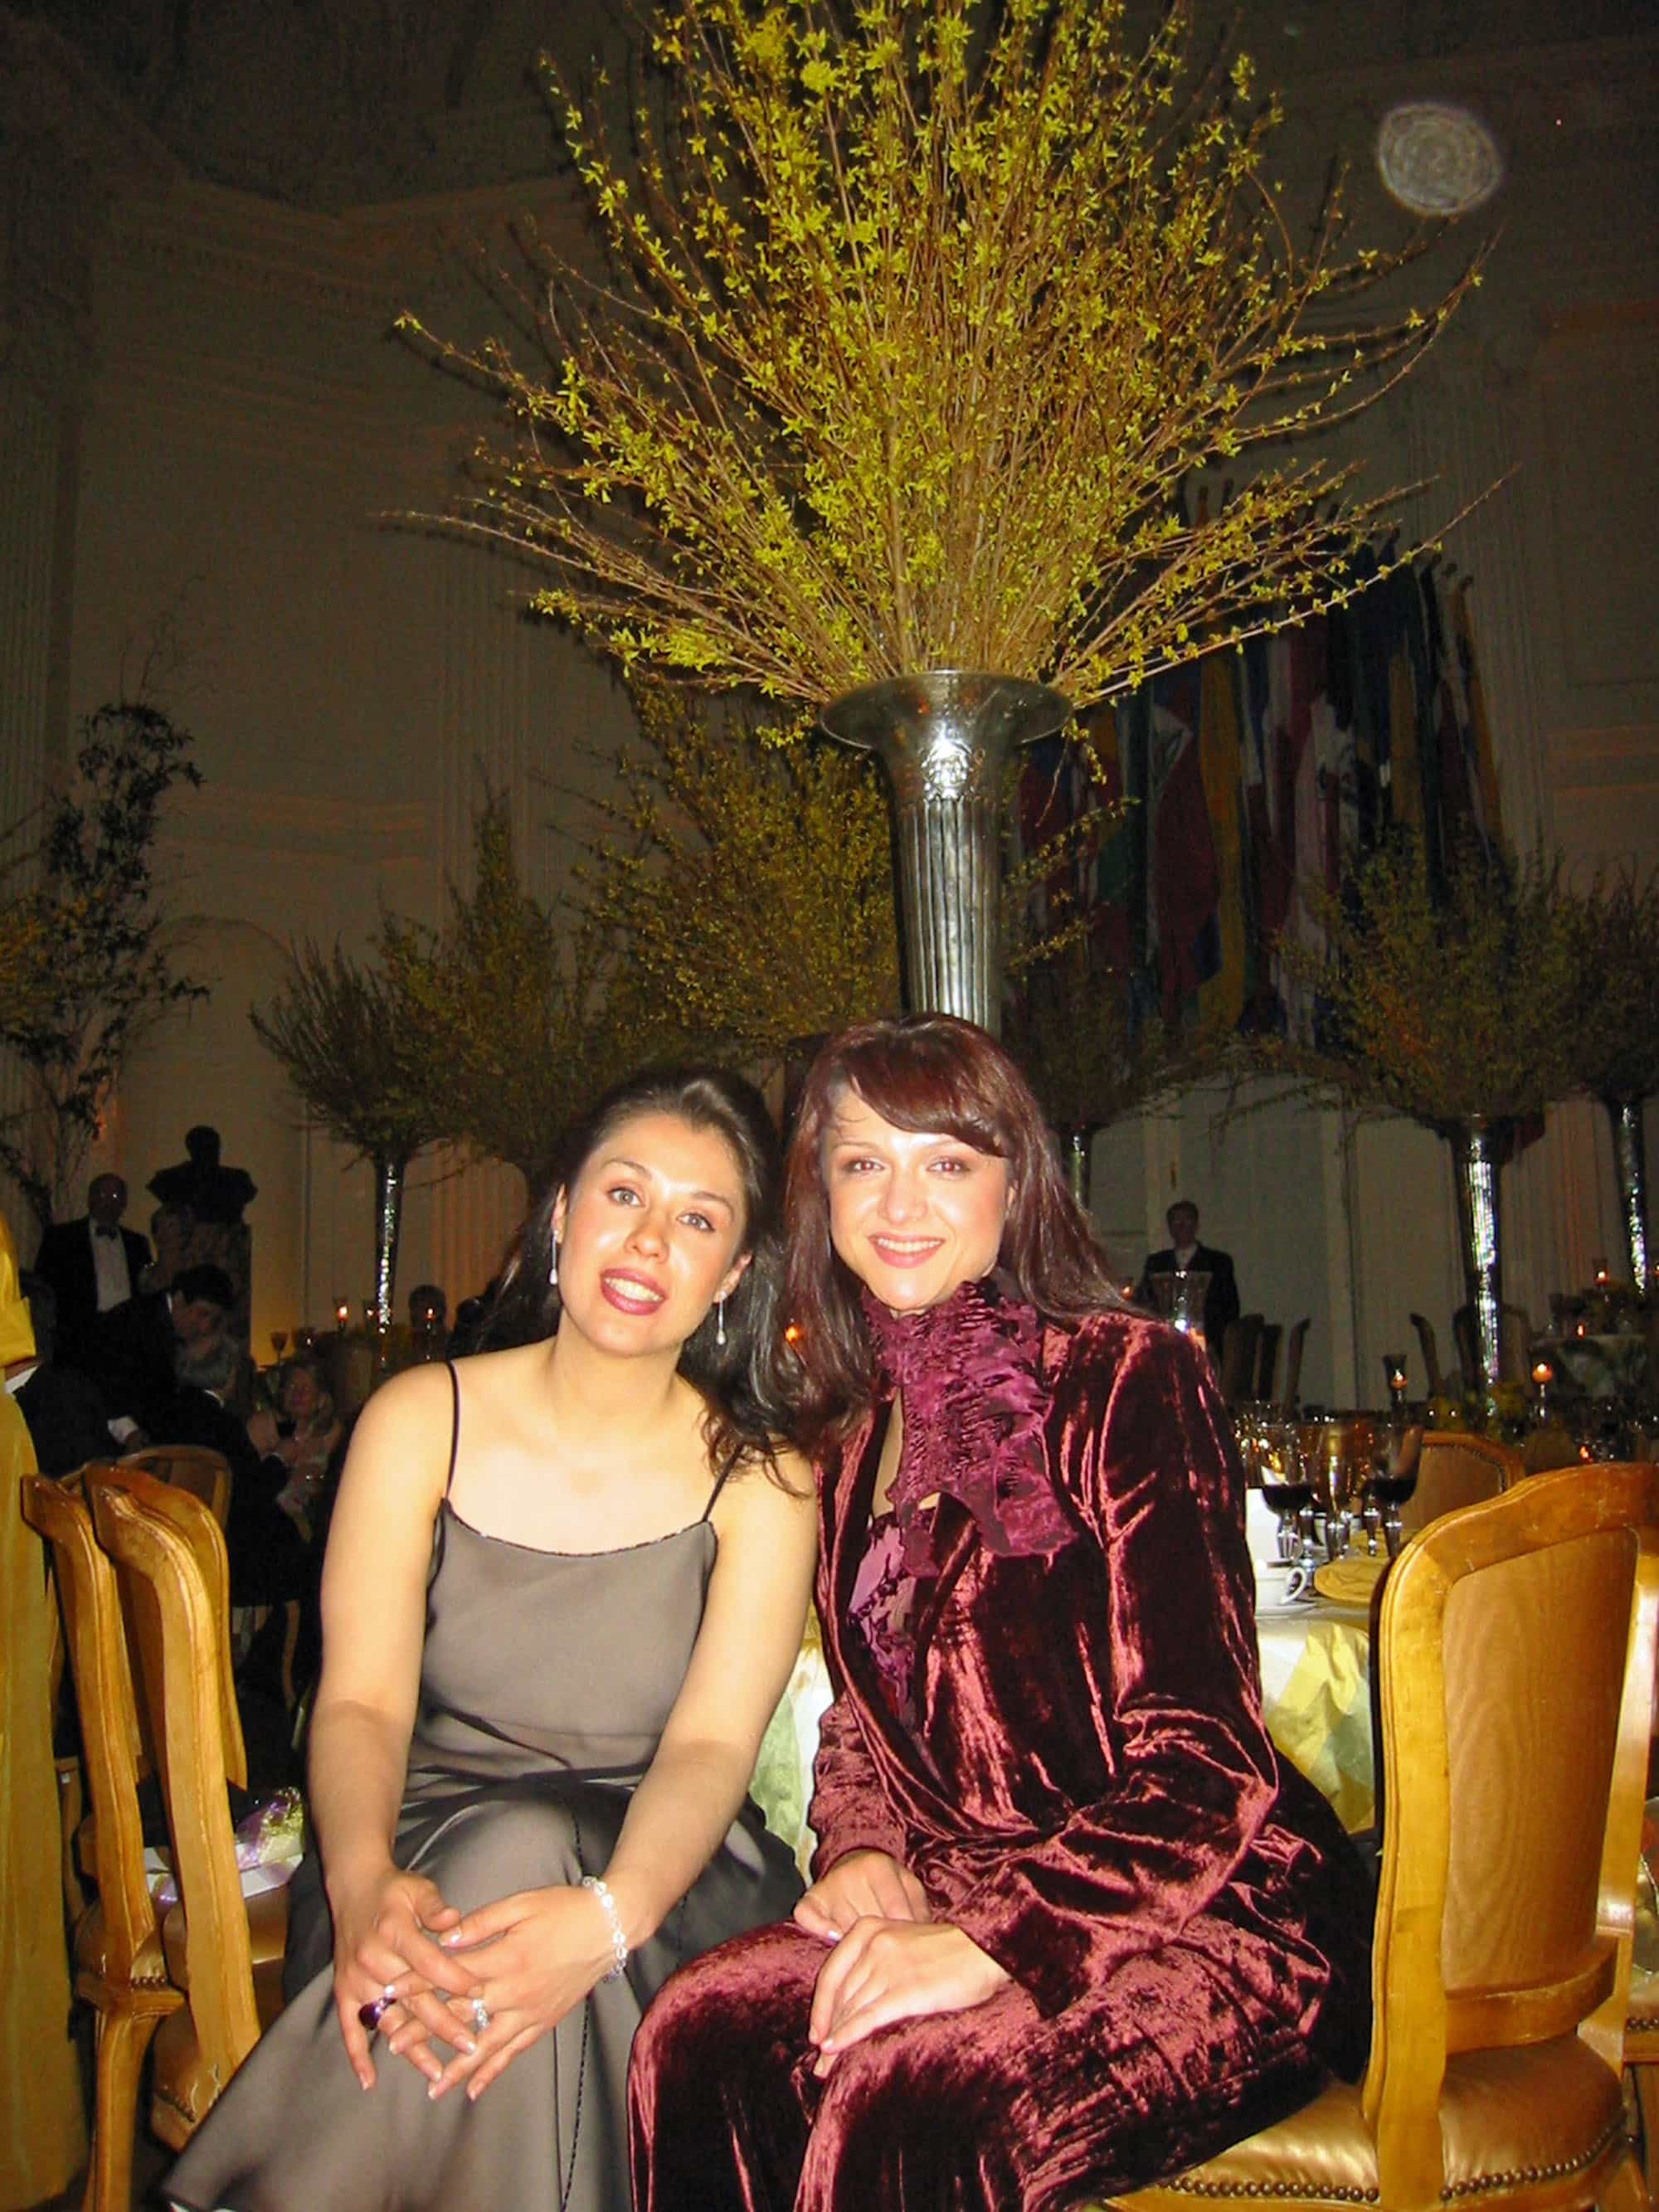 """Operatic sopranos Eugenia Garza and Tatiana Pavlovskaya also took a pared-down approach at their formal dinner. Garza is wearing a simple bronze sheath with spaghetti straps by Adrianna Pappell, while Pavlovskaya is channeling her inner '70s with a velvet burgundy pantsuit by – """"I can't remember!"""" she said. But, it looks very vintage Yves St. Laurent to me."""